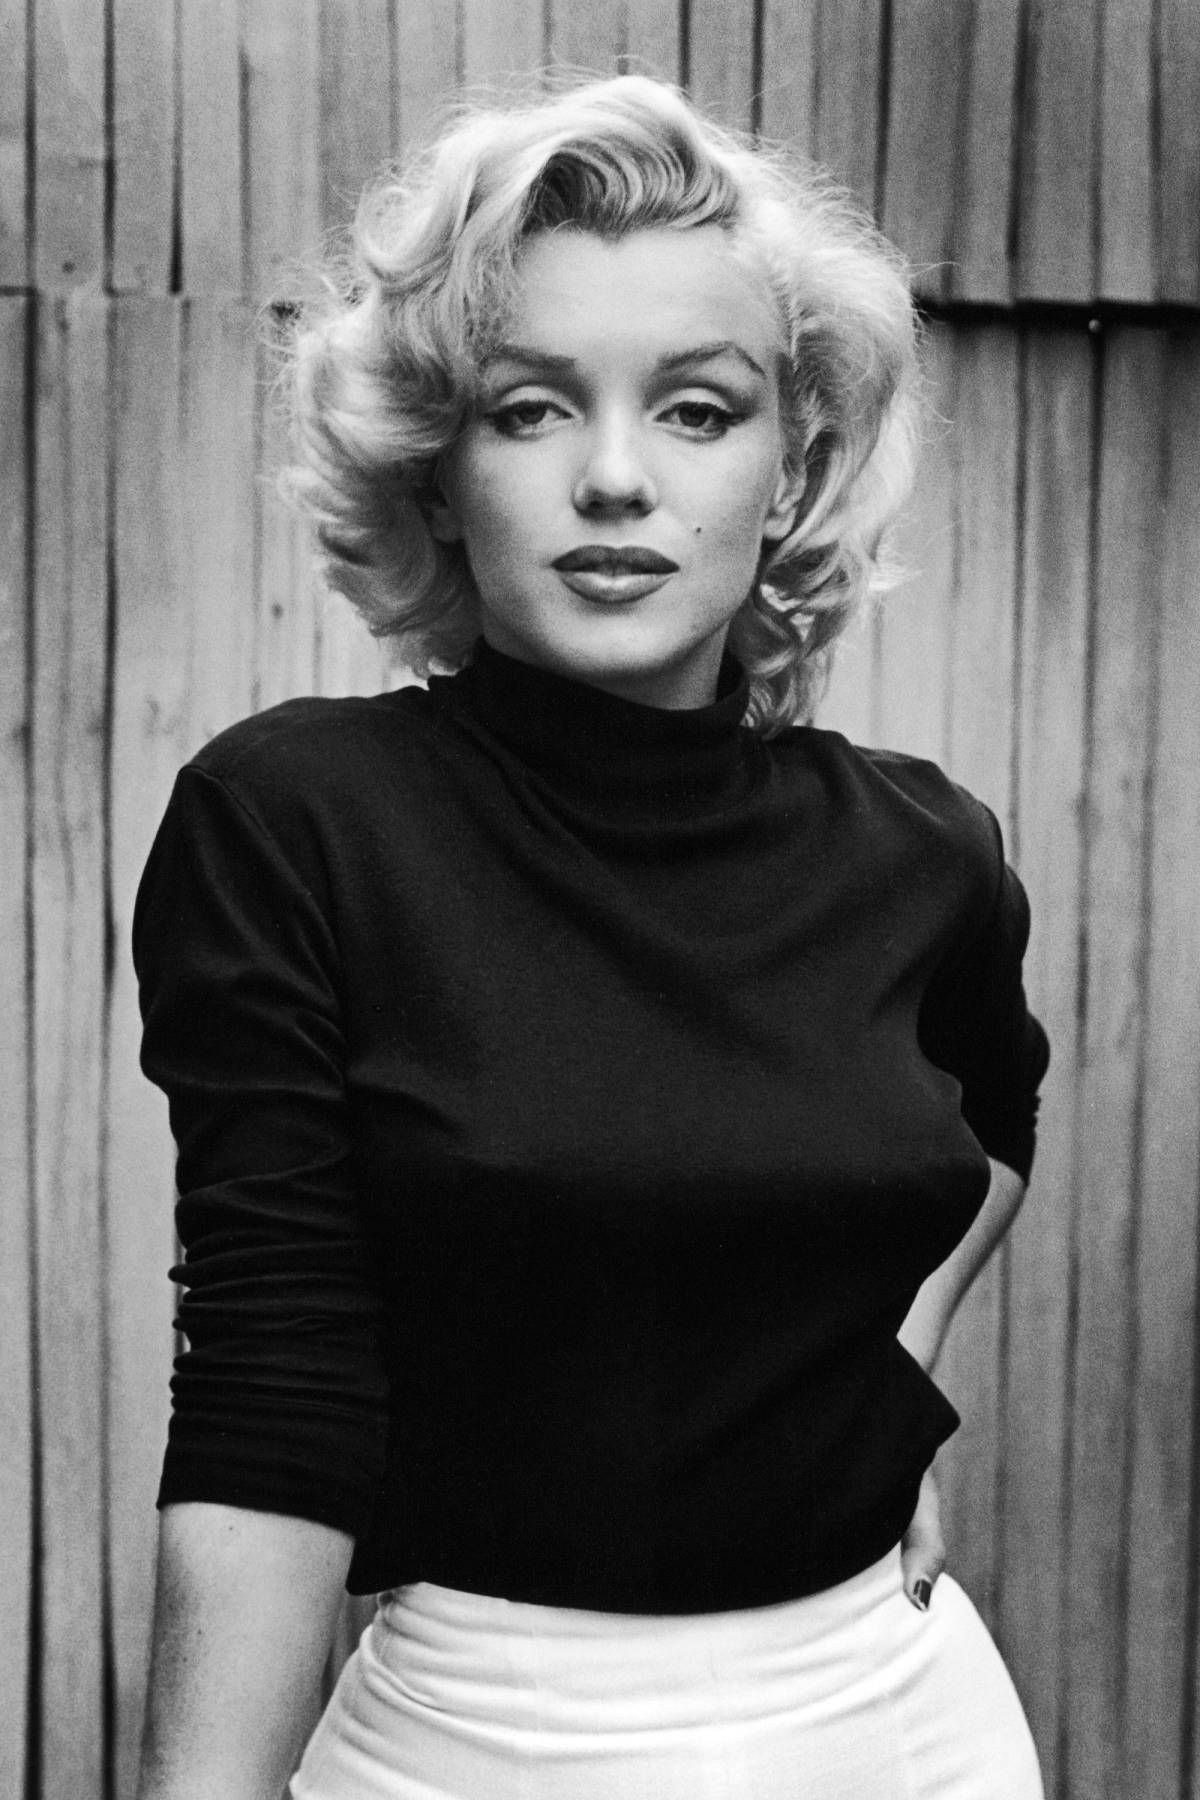 Favori Rare Marilyn Monroe Photos - 15 Pictures of Marilyn Monroe SF93